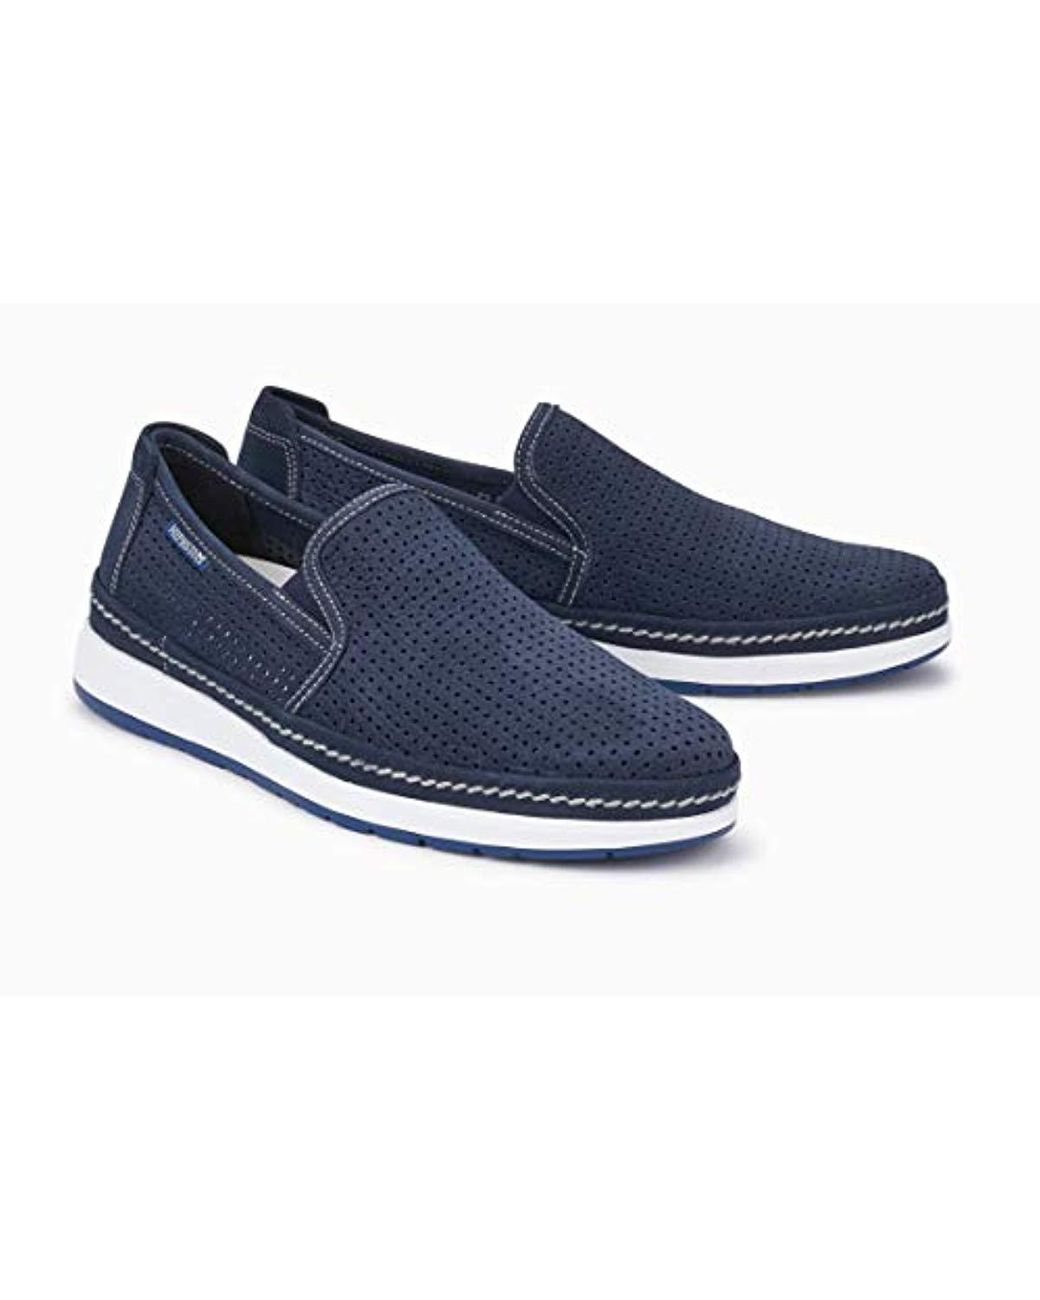 6a2679d02e Mephisto Hadrian Perf Sneaker in Blue for Men - Lyst